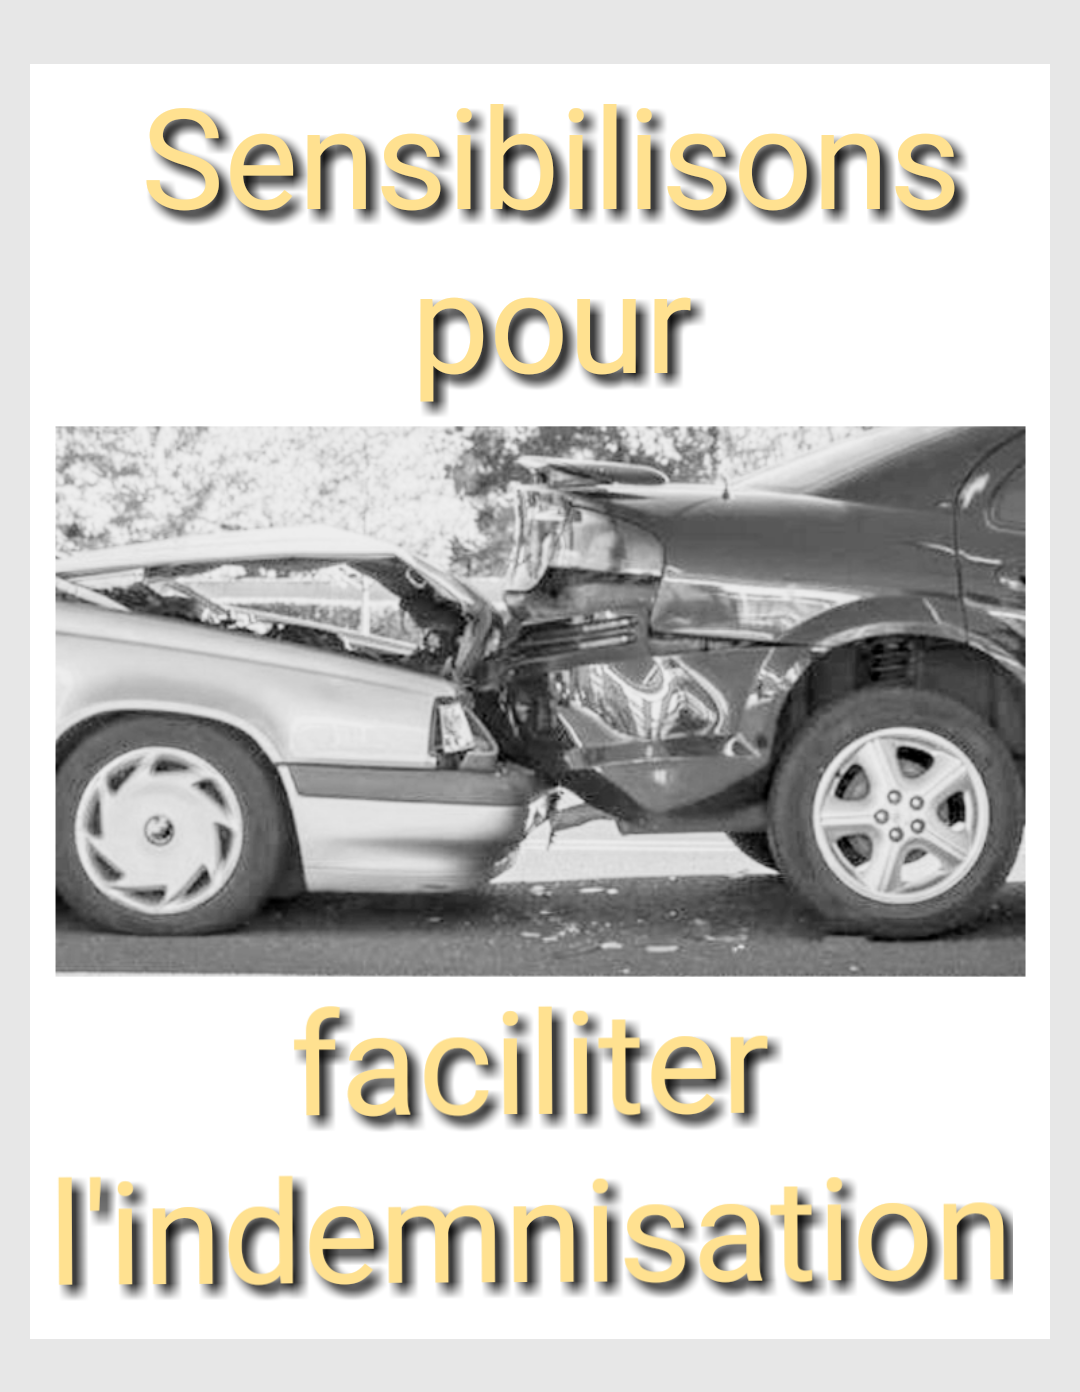 Sensibilisons indemnisation